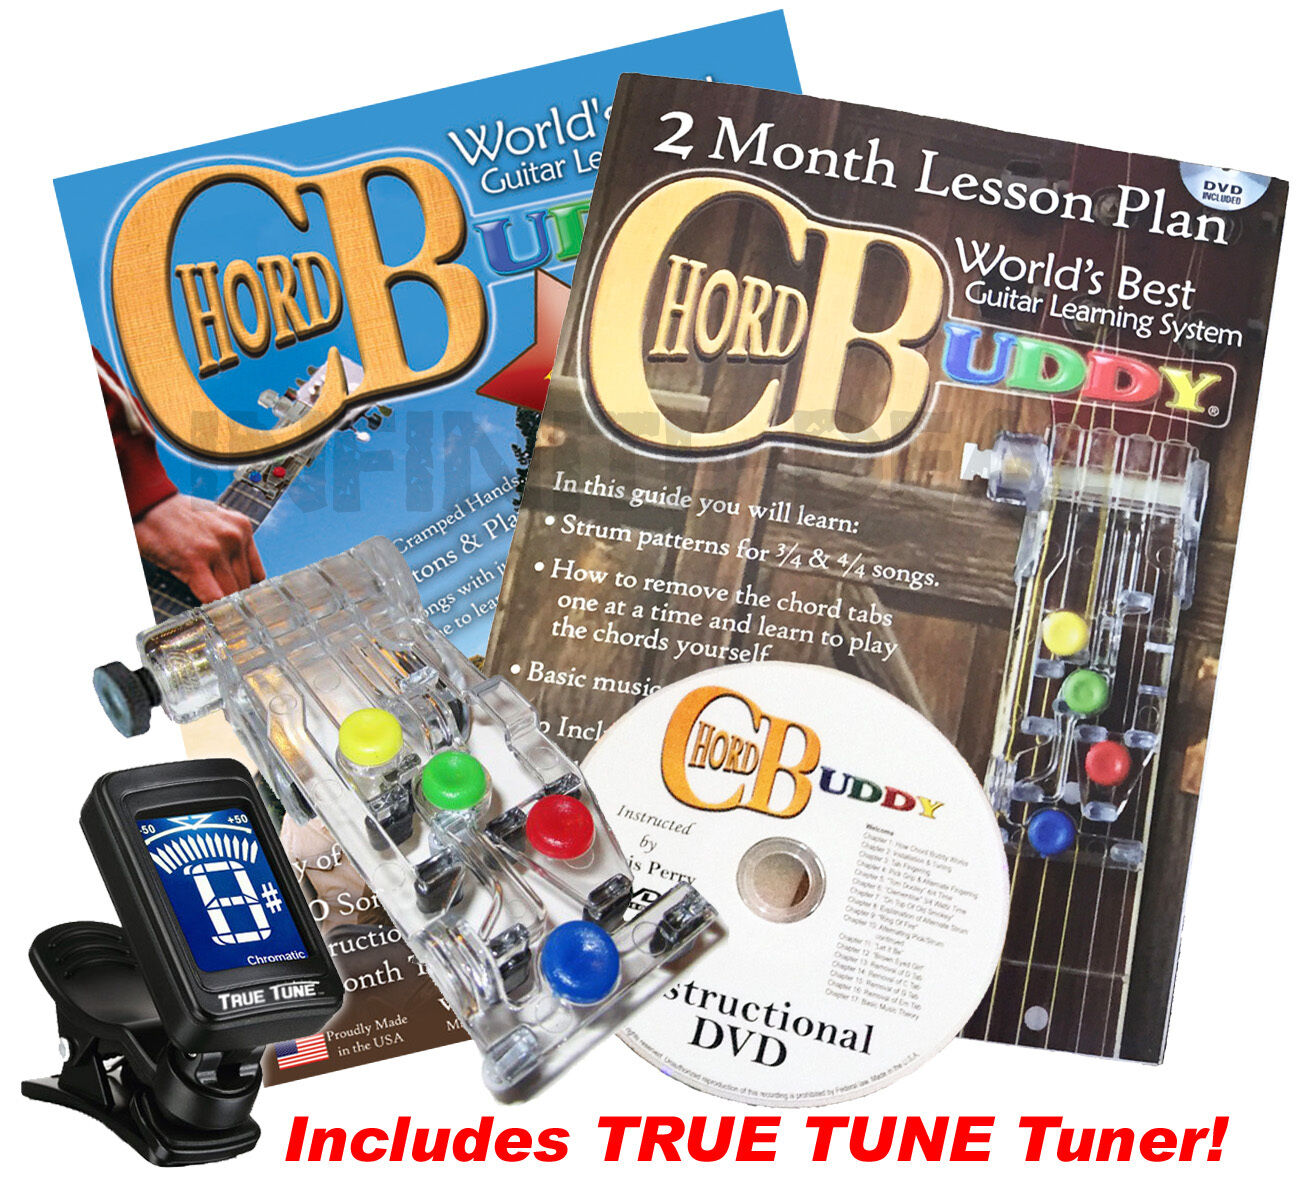 Chord buddy guitar learning teaching system practrice dvd book picture 1 of 3 hexwebz Image collections